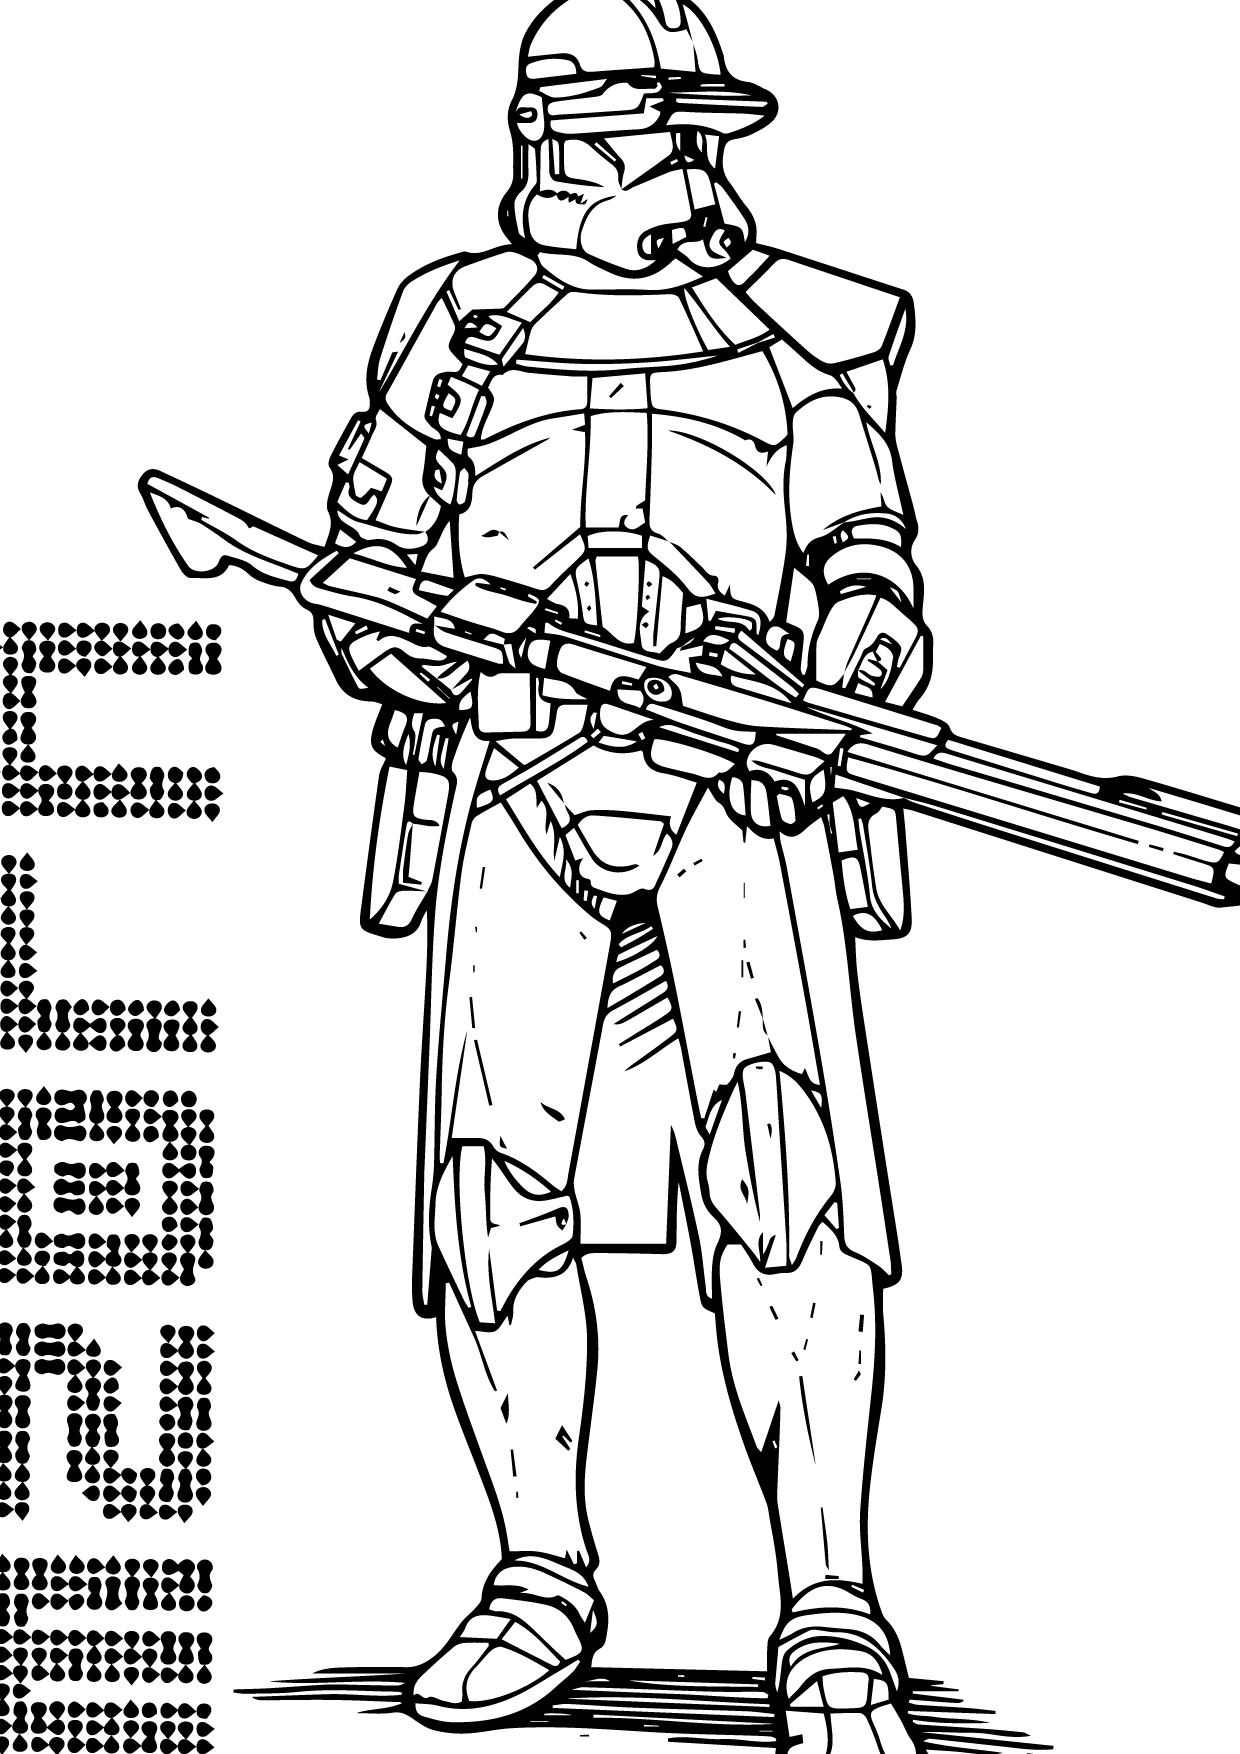 coloring star wars clone the clone troopers standby in star wars coloring page coloring wars star clone